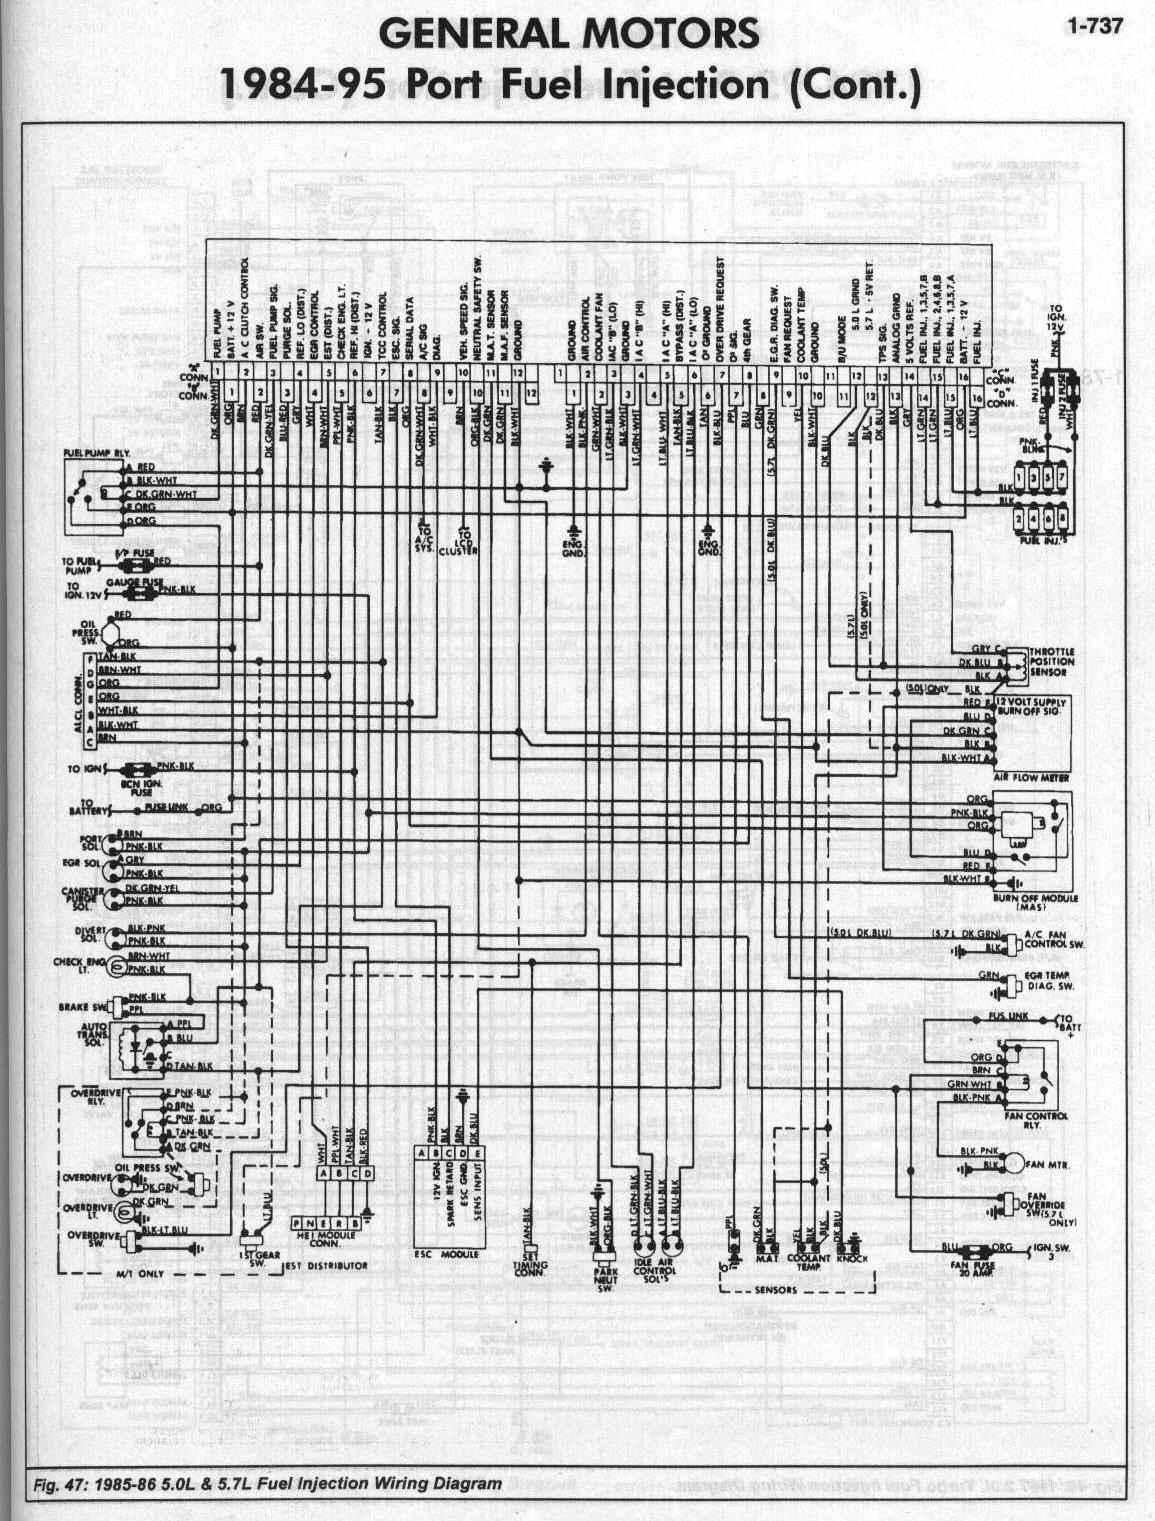 85 Blazer Wiring Diagram Automotive 1986 Chevy 1987 Chevrolet K5 Schematic Library Rh 64 Yoobi De 87 86